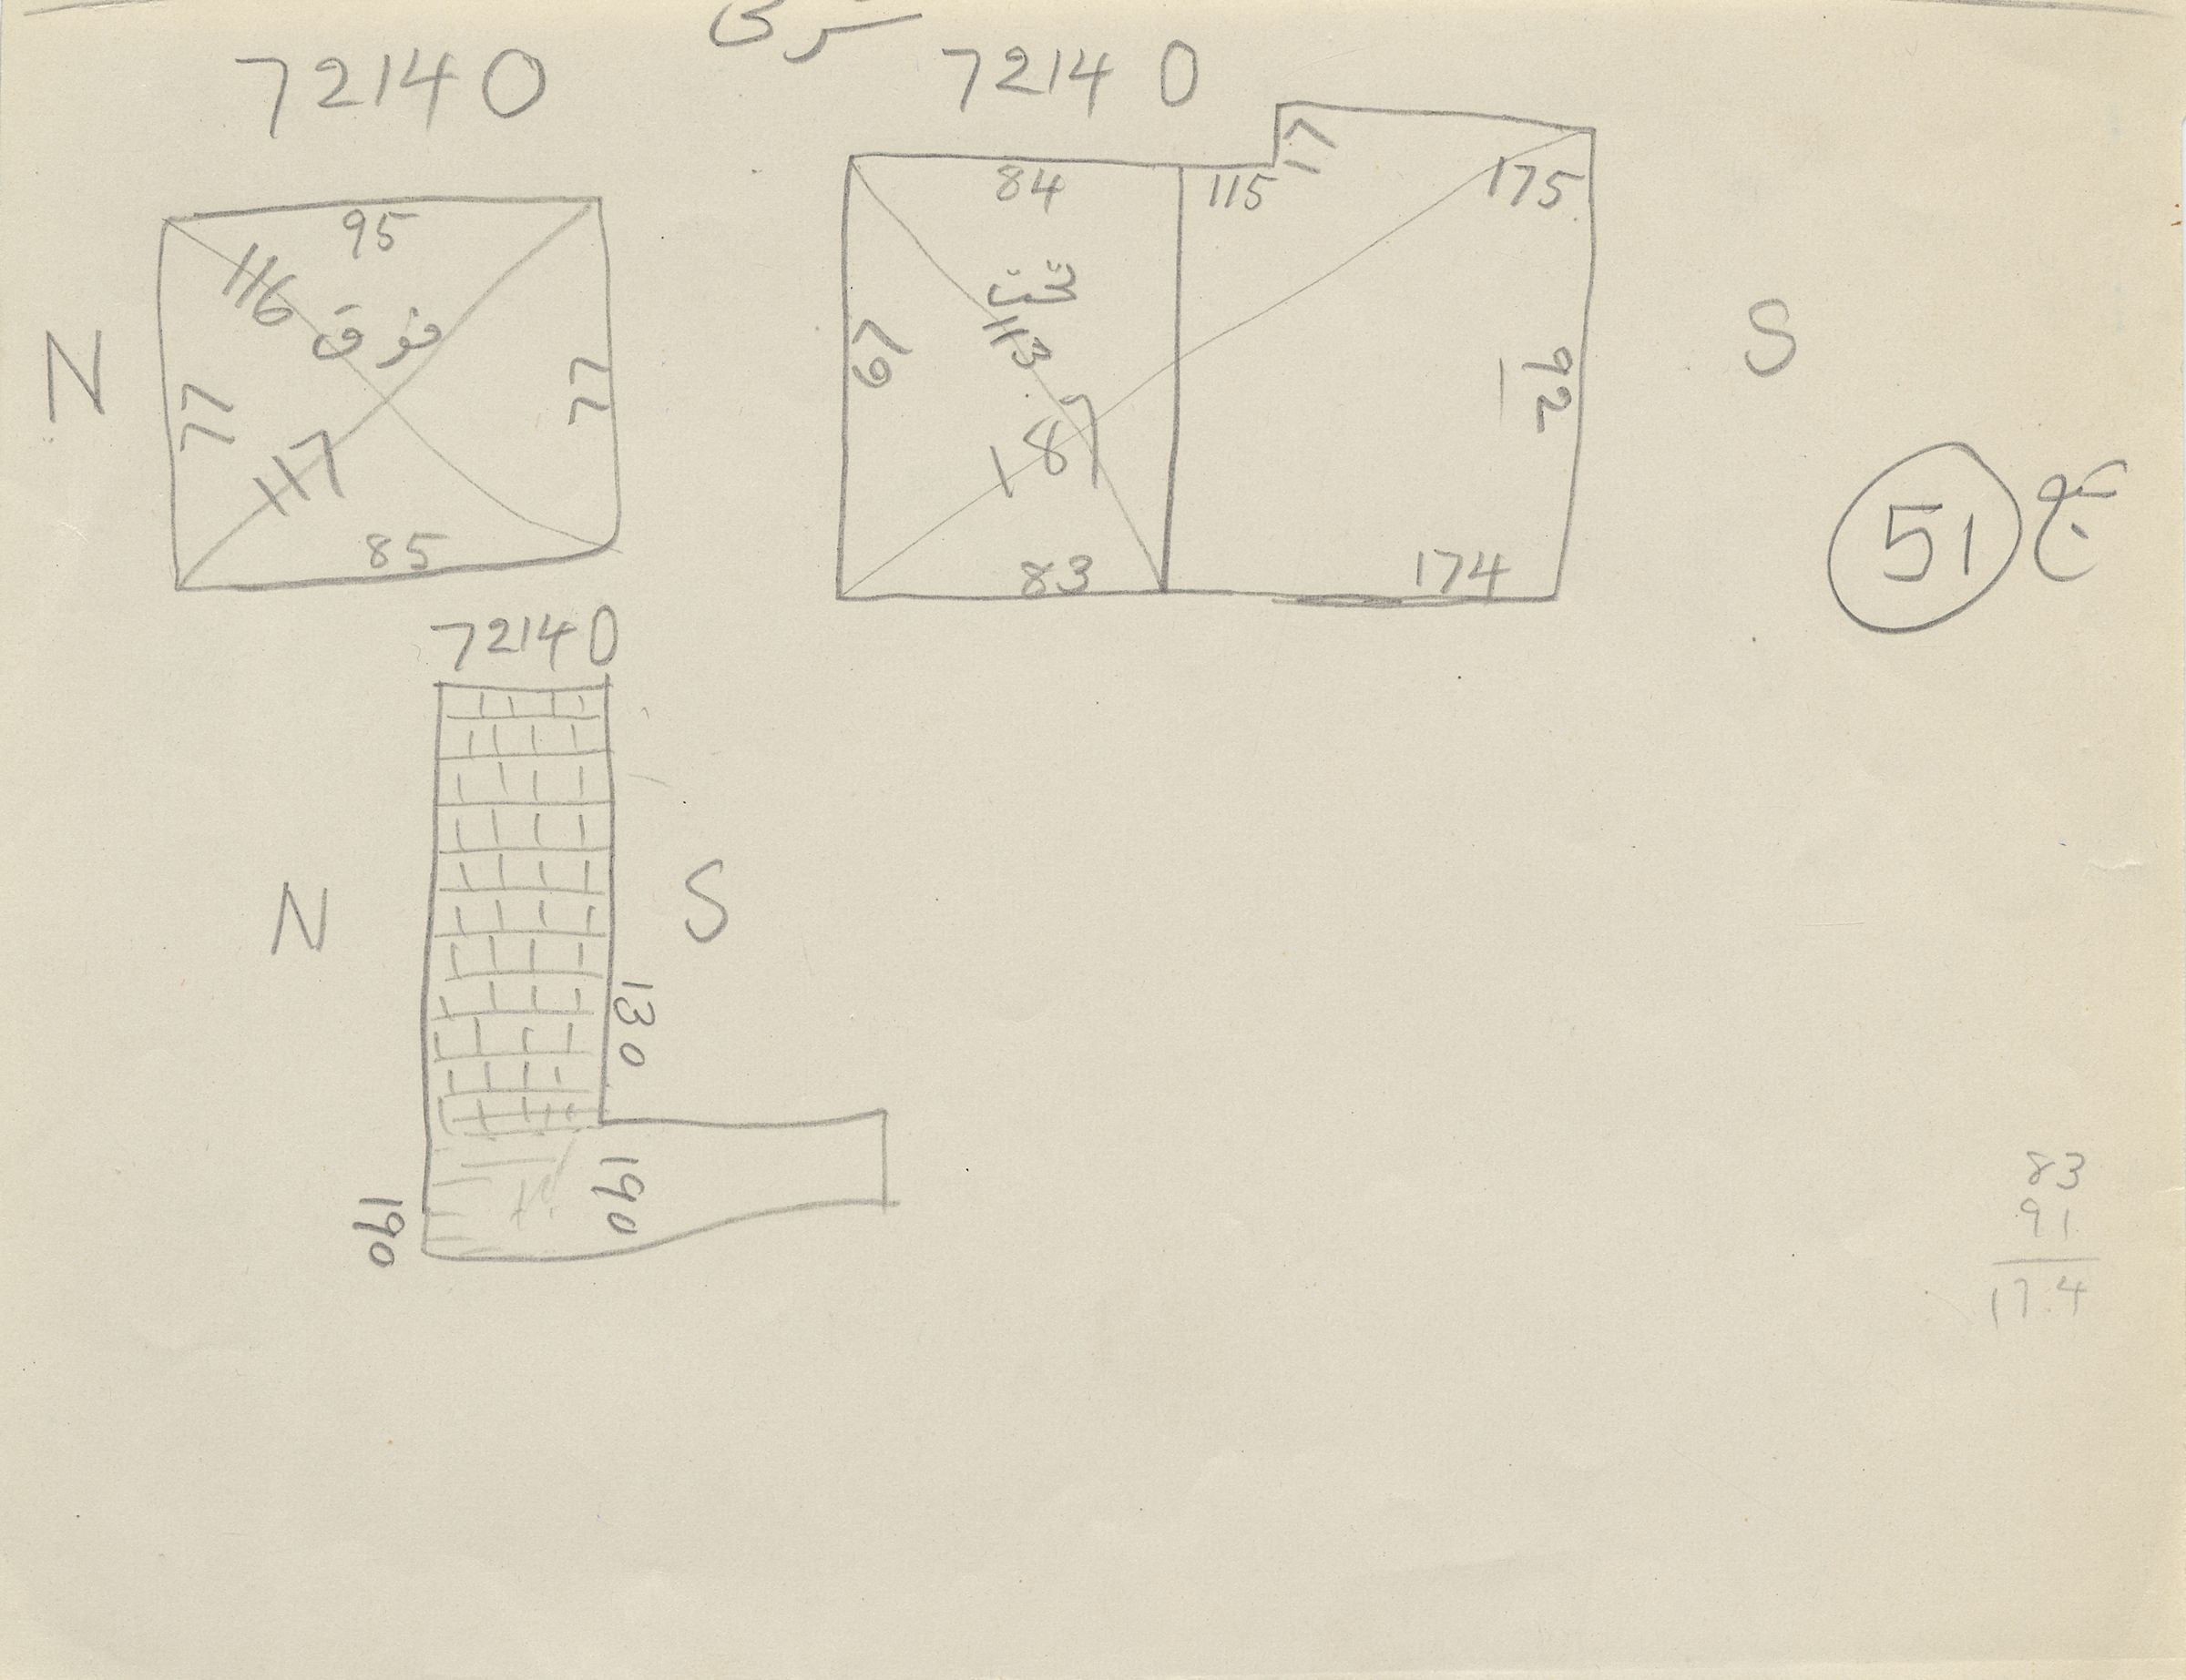 Maps and plans: G 7214, Shaft O